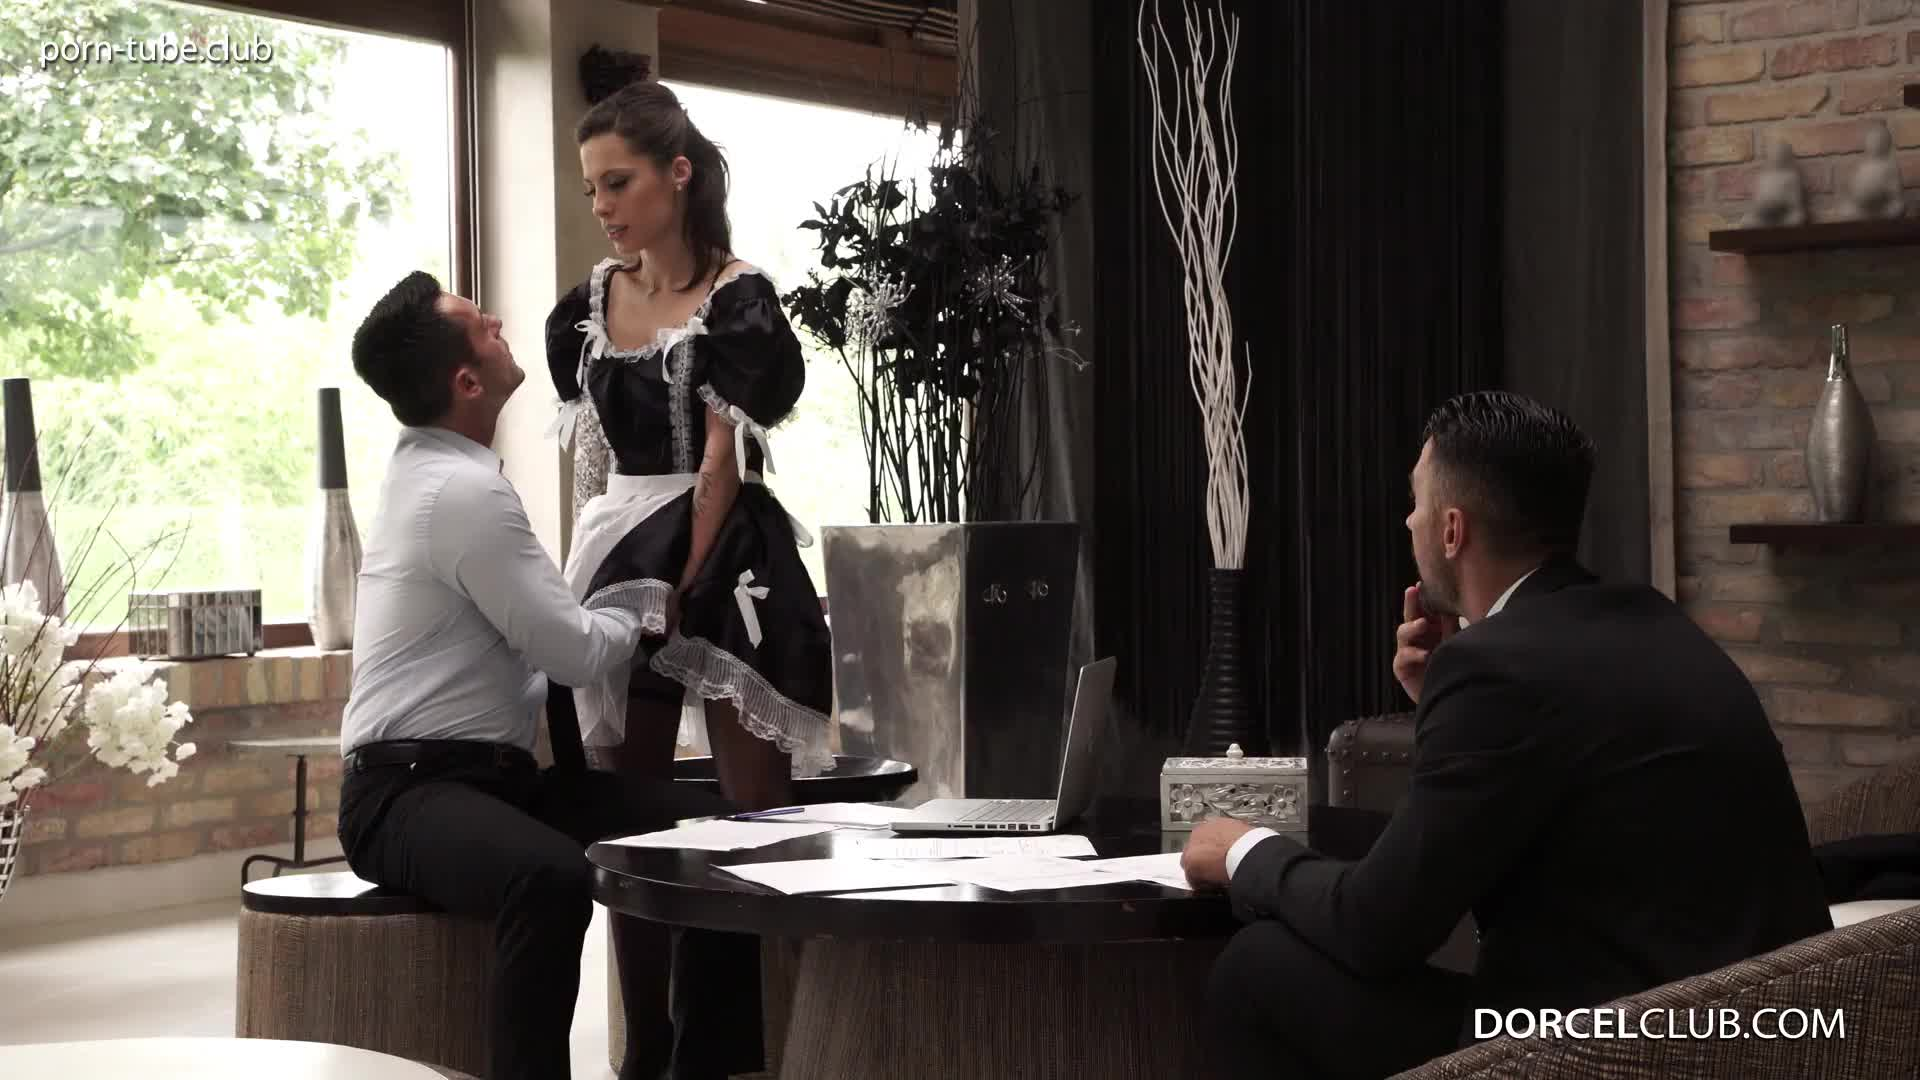 DorcelClub 17.01.26 Nikita Bellucci Maid Nikita Gets Fucked By 3 Men